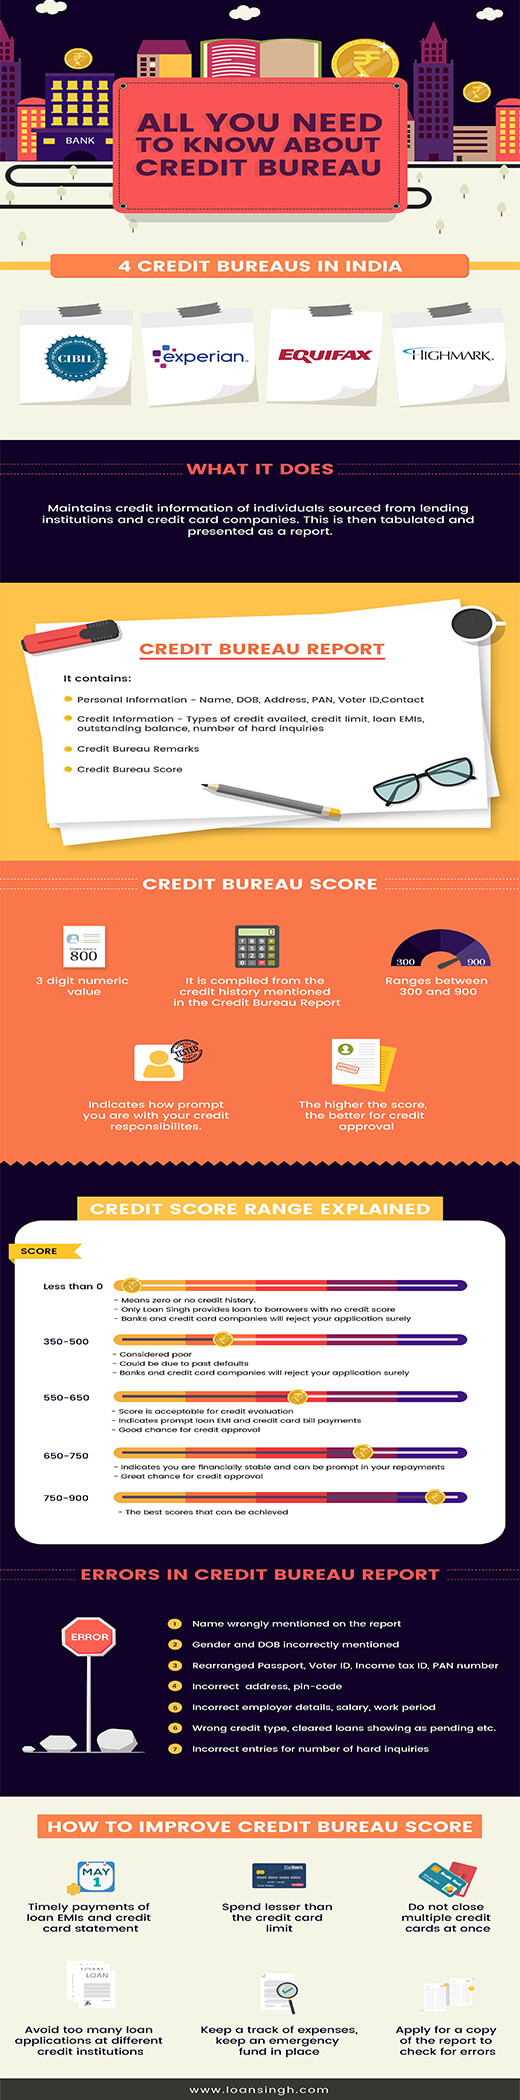 Loan Singh S Latest Infographic Talks About Credit Bureau In India Salaried Professionals Dont Fully Understa Personal Loans Loans For Bad Credit Finance Blog